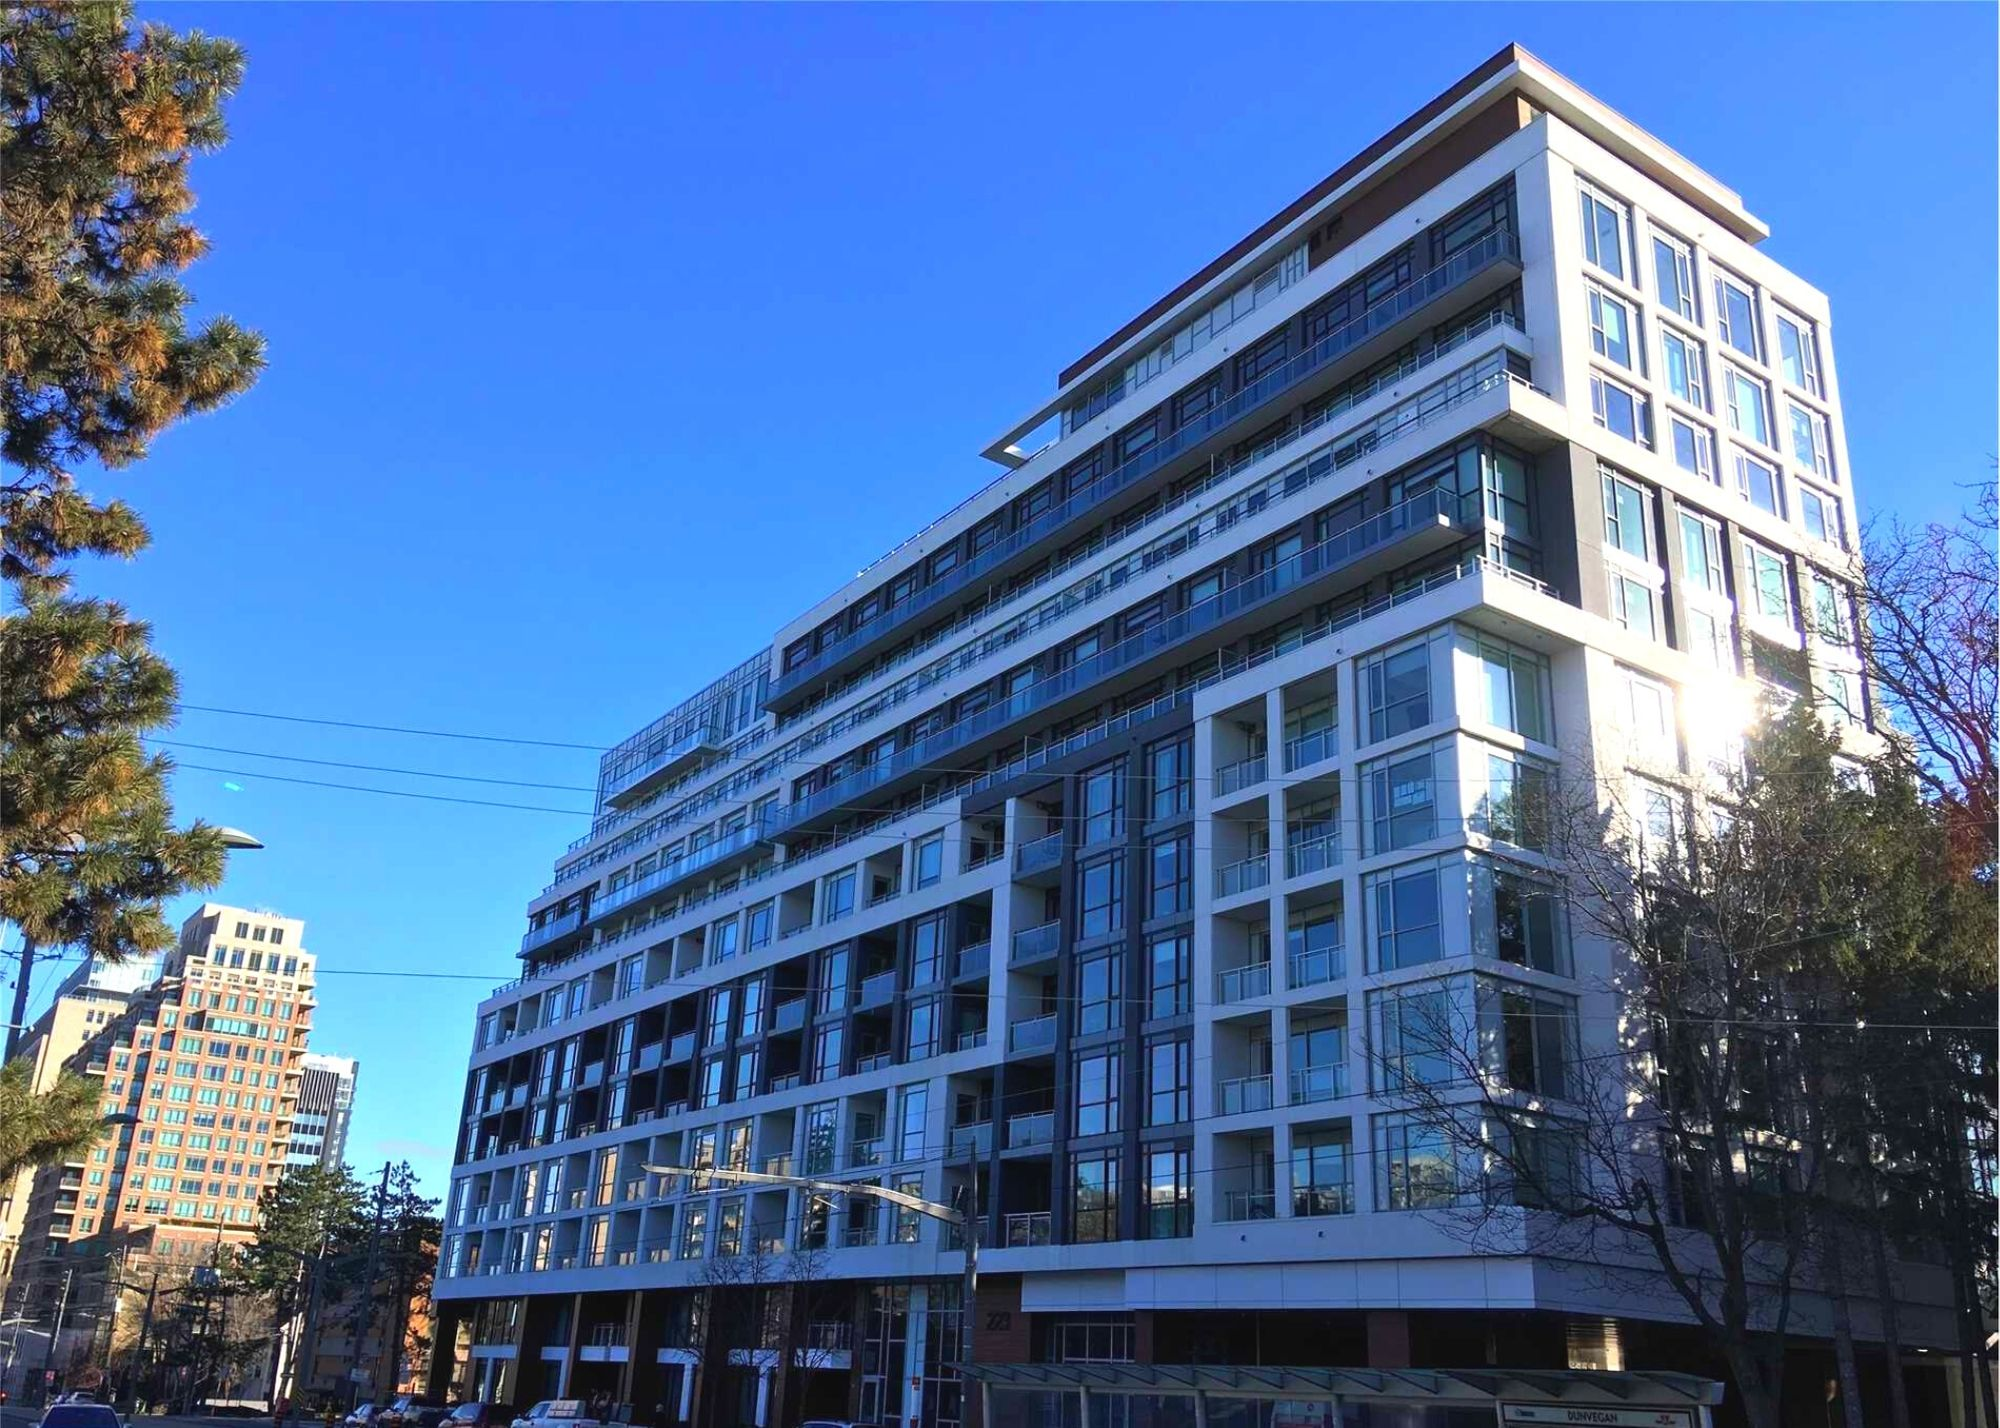 223 St Clair Ave 2 Bedrooms Penthouse With Large Balcony $2,350